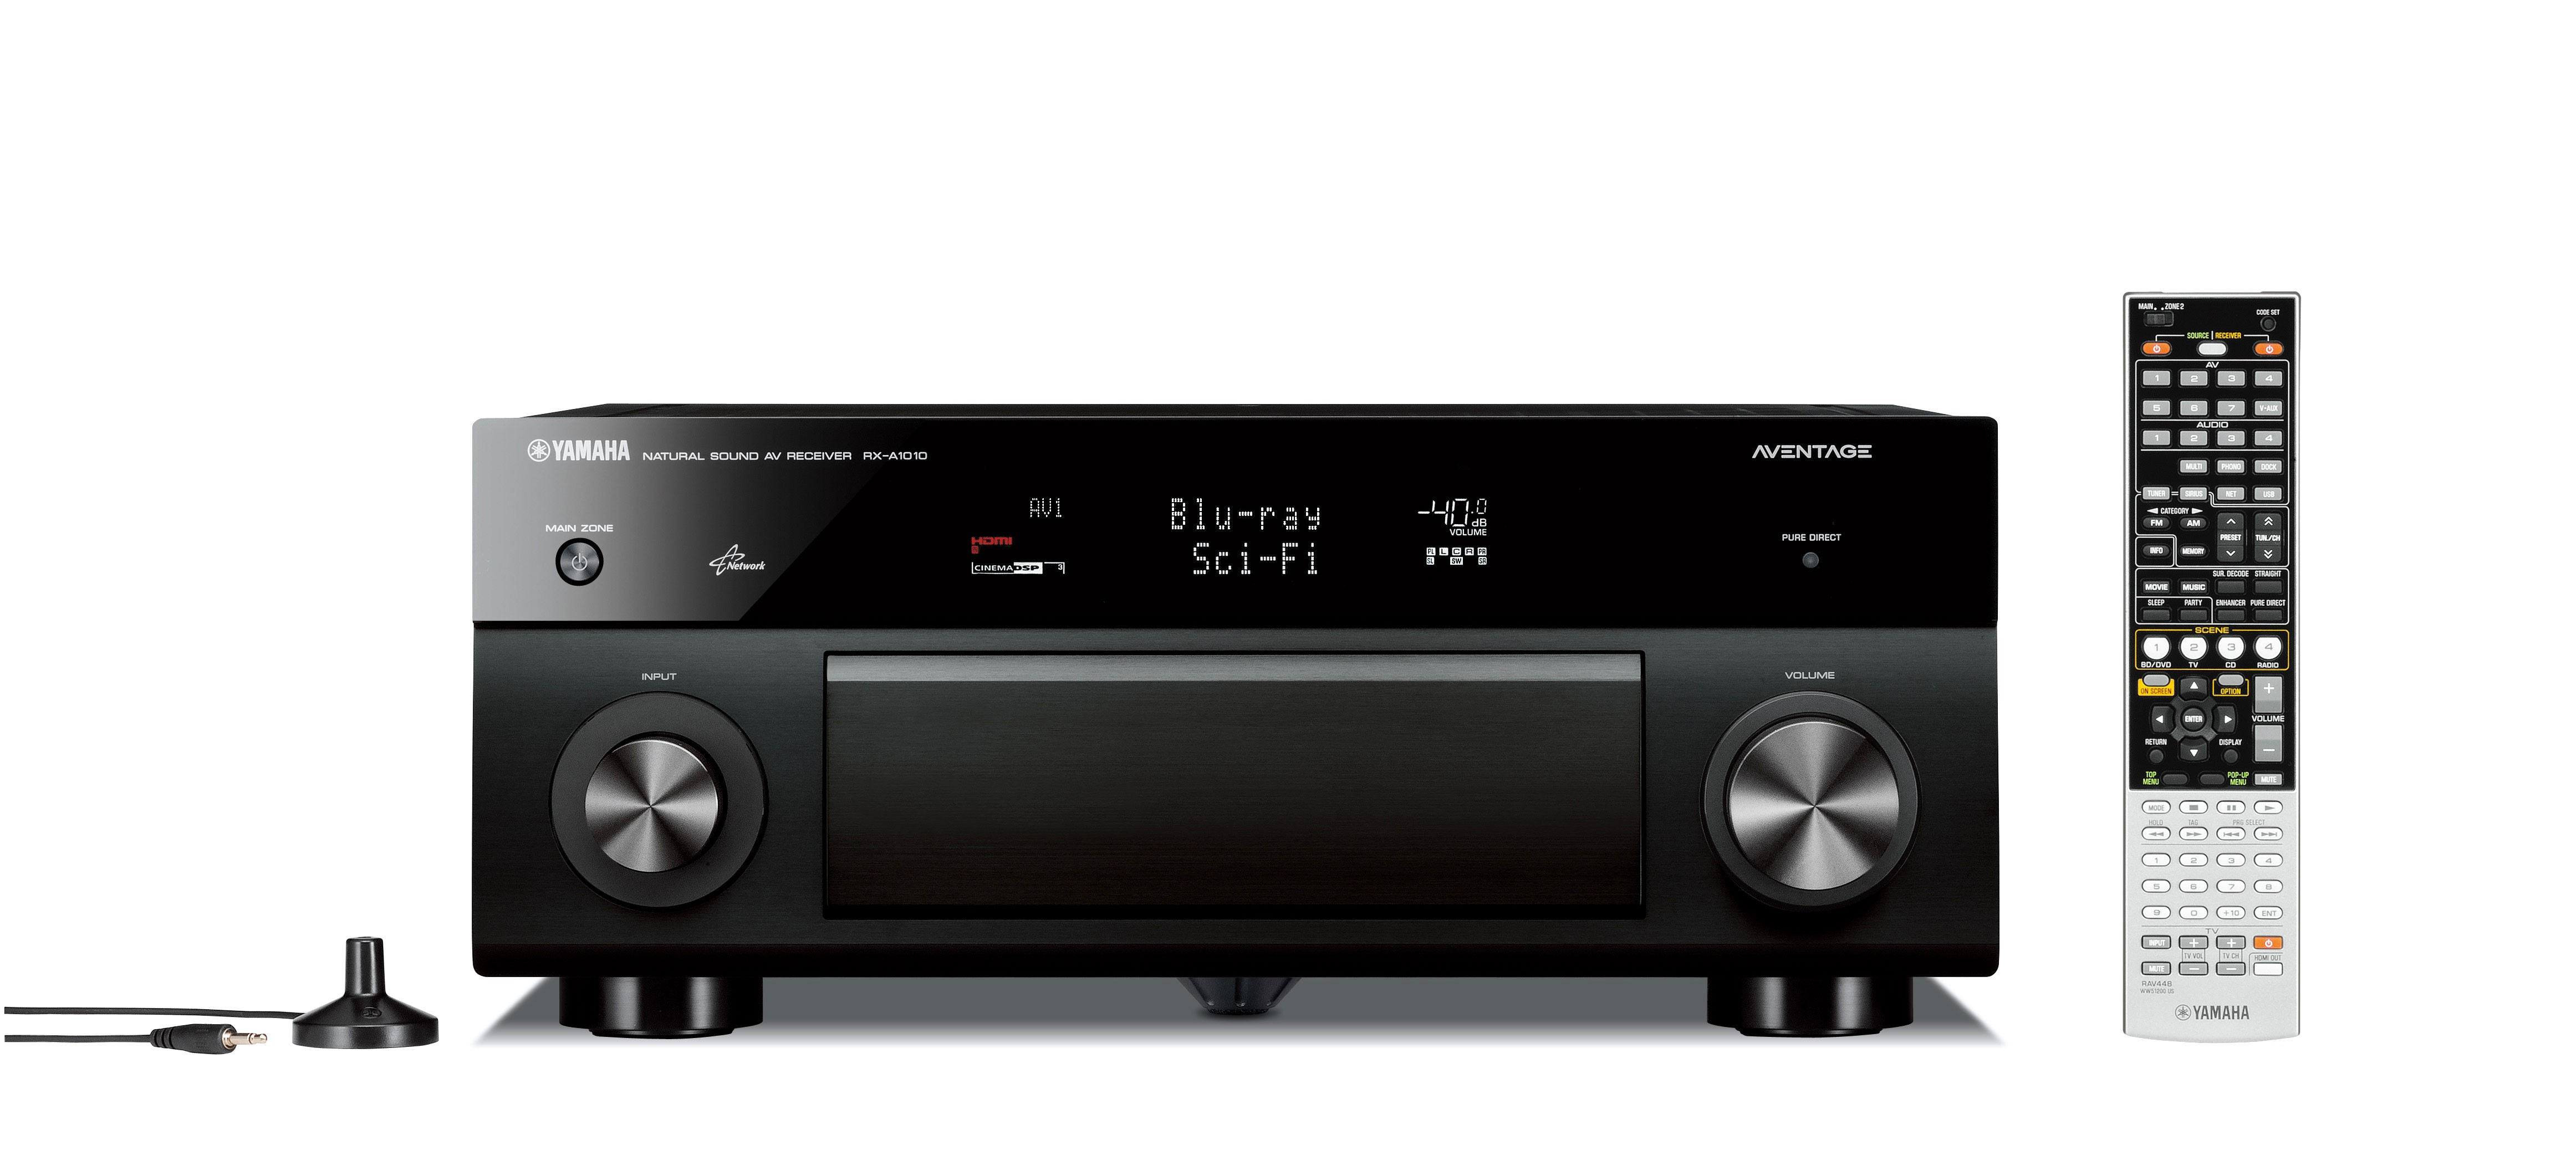 YAMAHA RX-A1010 AVENTAGE Series Home Theater Receiver